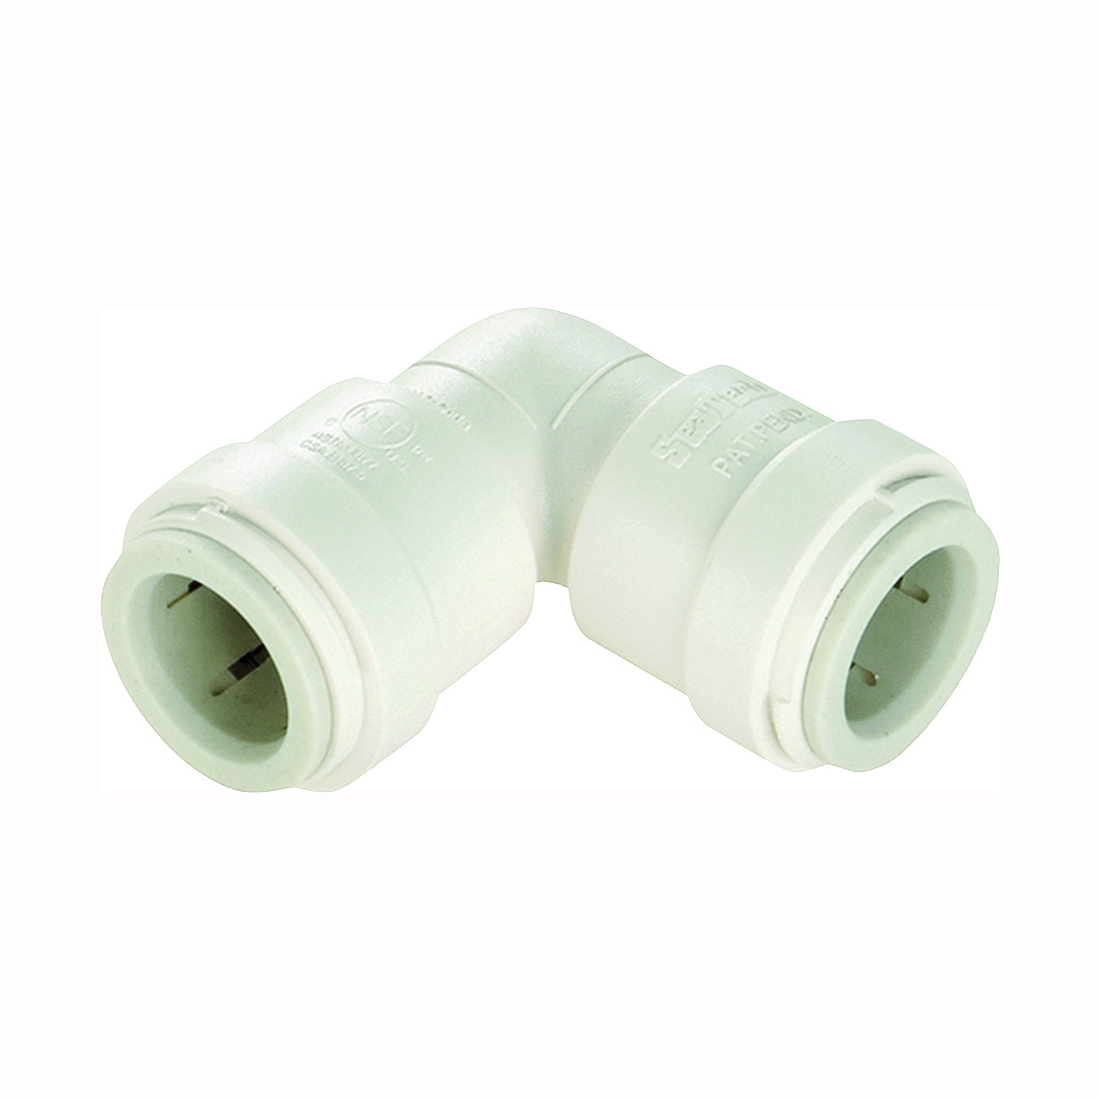 Picture of Watts 35717-14/P-820 Union Elbow, 3/4 in, 3/4 in, 90 deg